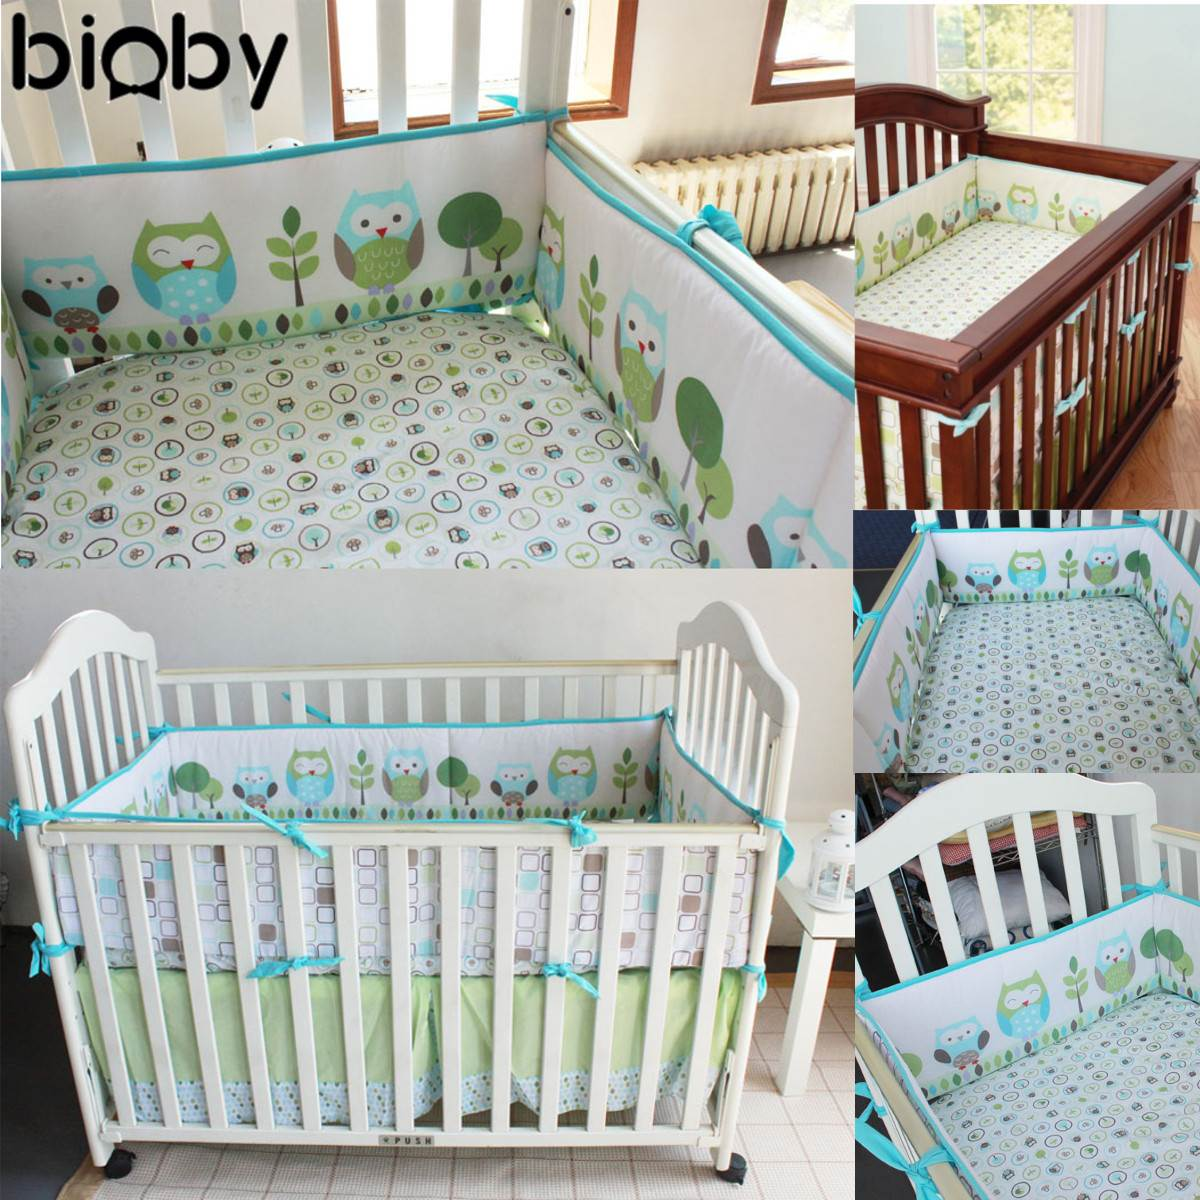 Crib protector for babies - 4pcs Cute Owl Baby Infant Cot Crib Bumper Safety Protector Toddler Nursery Bedding Set Cushion Pad